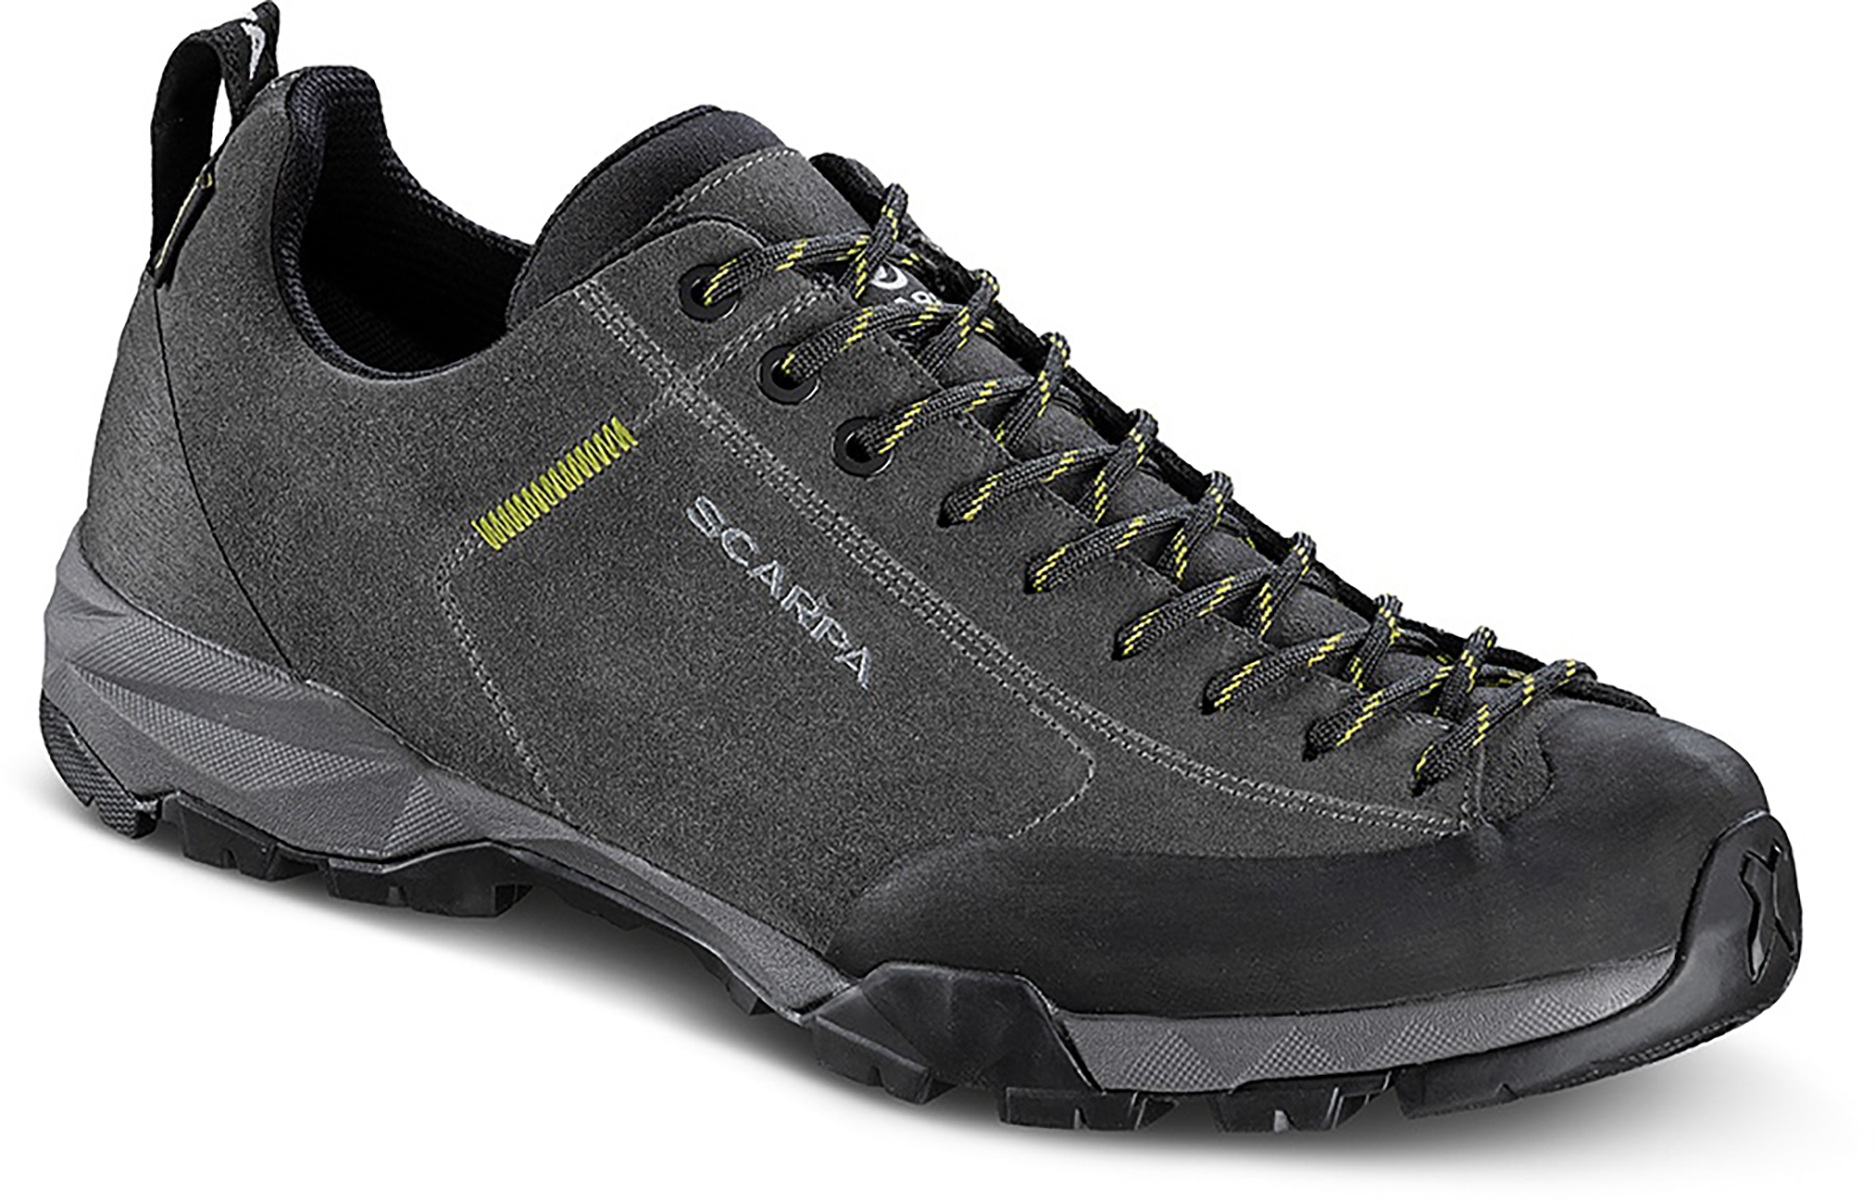 Scarpa Mojito Trail GTX® Shoes | Shoes and overlays